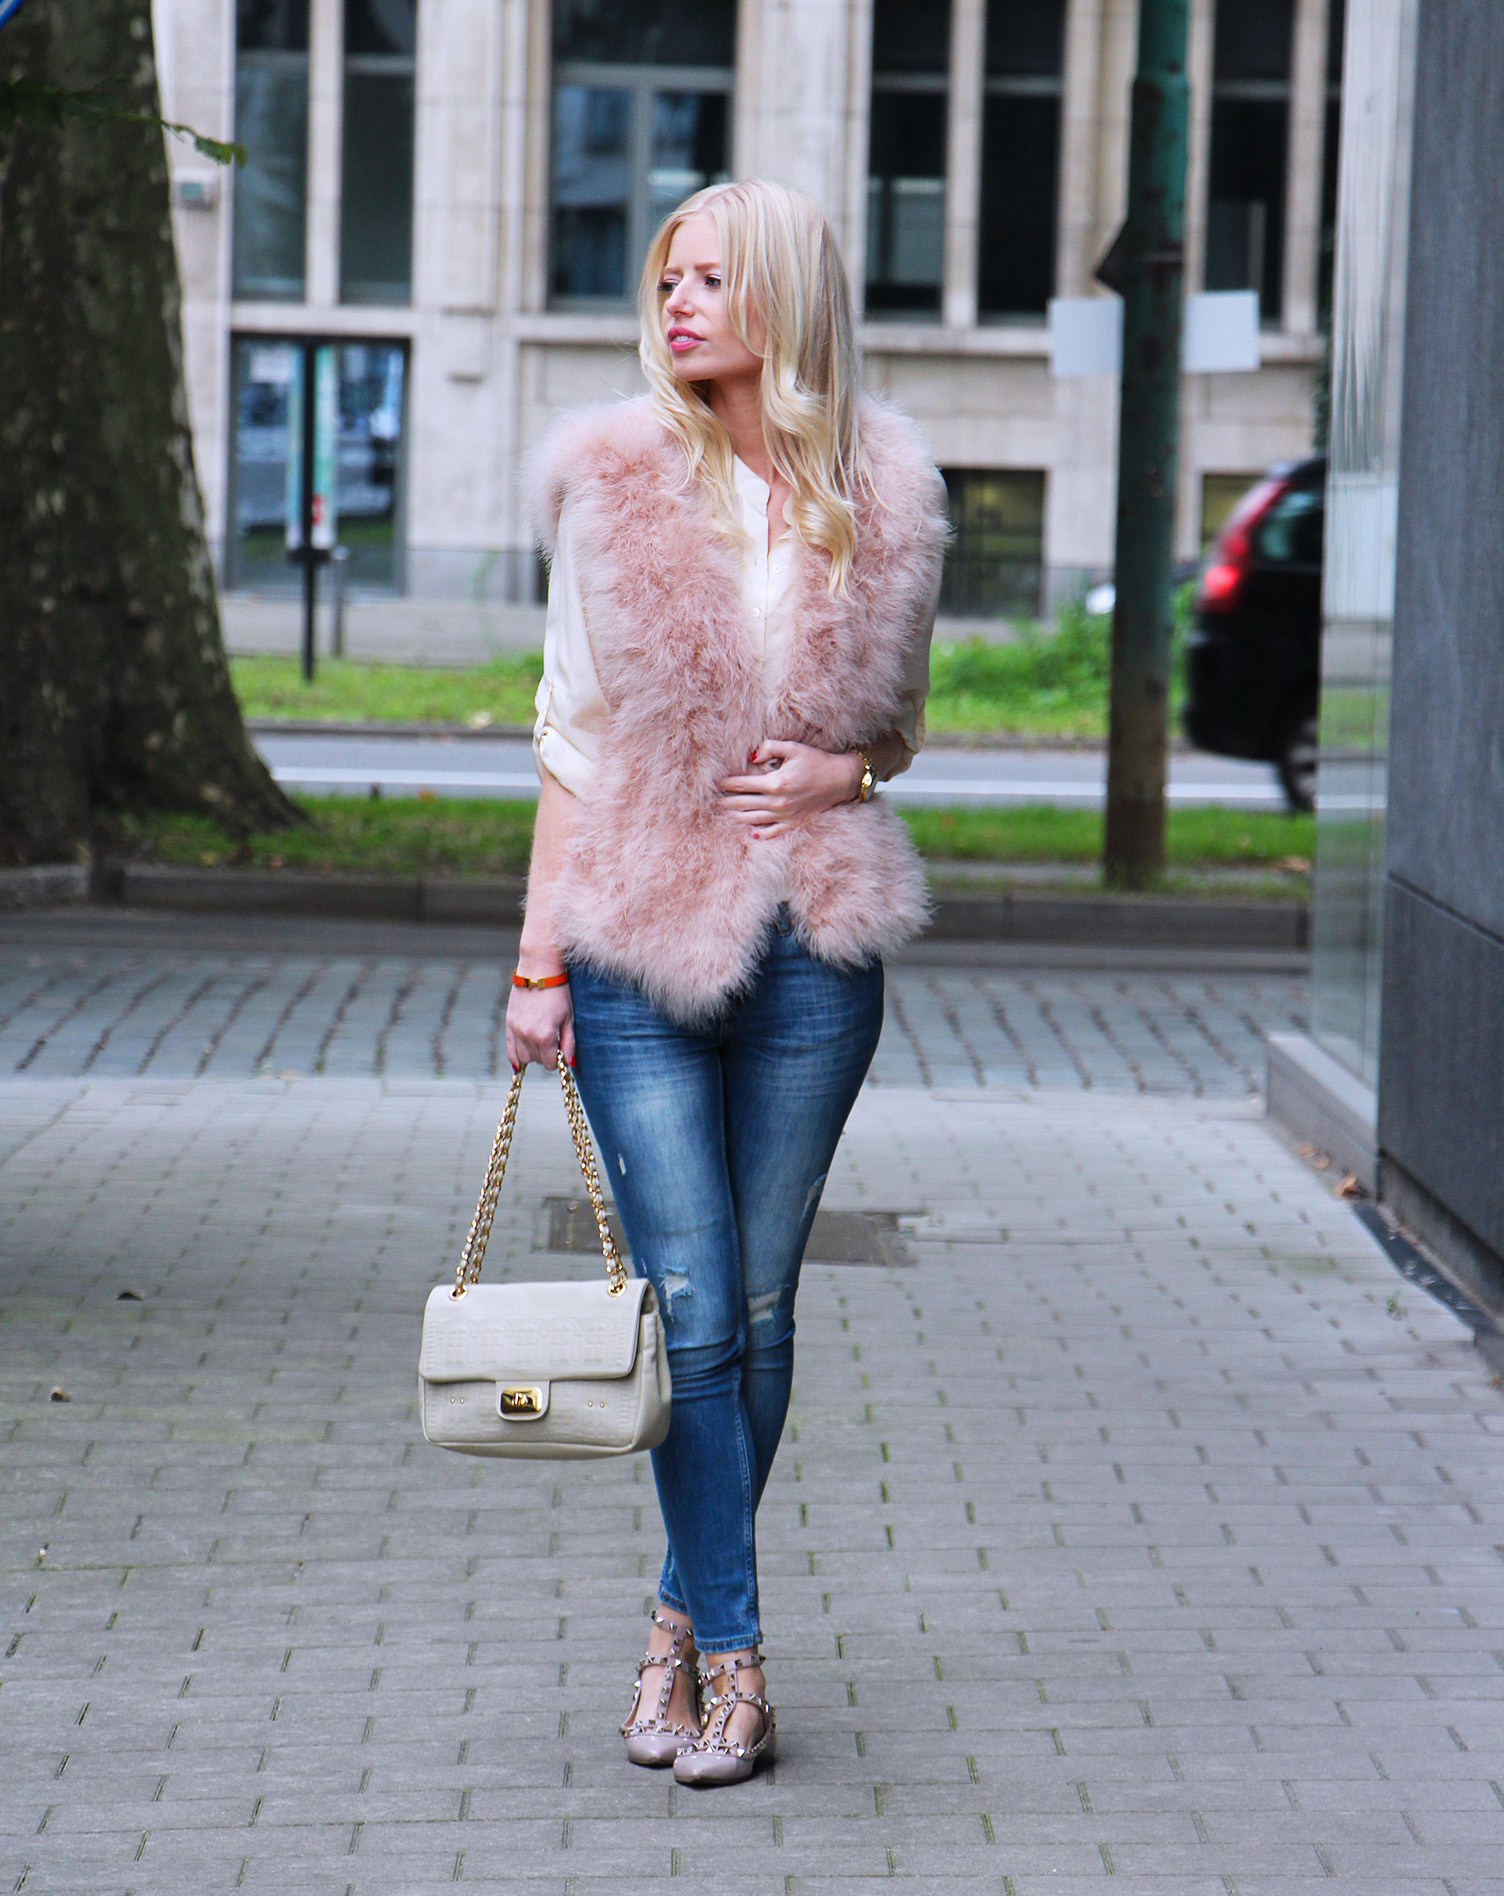 Outfit || The pink waistcoat